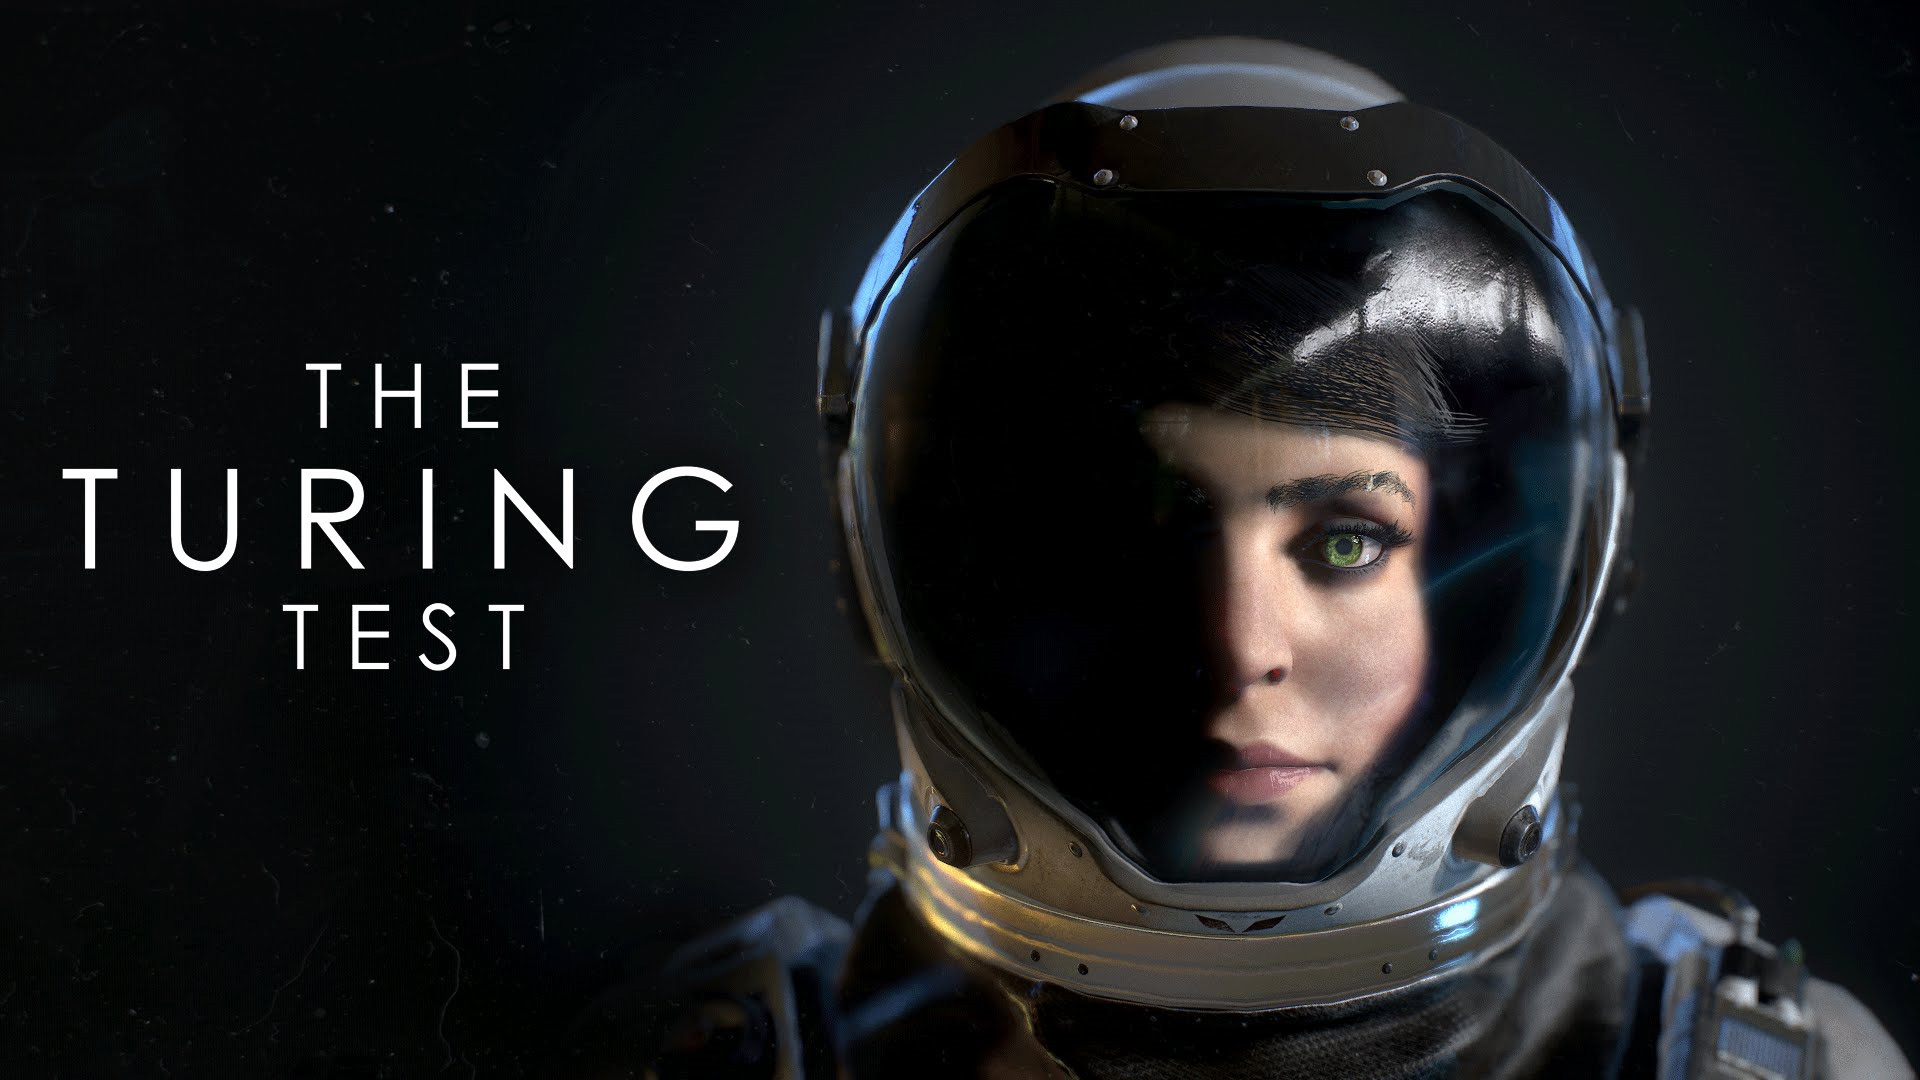 The Turing Test Wallpaper